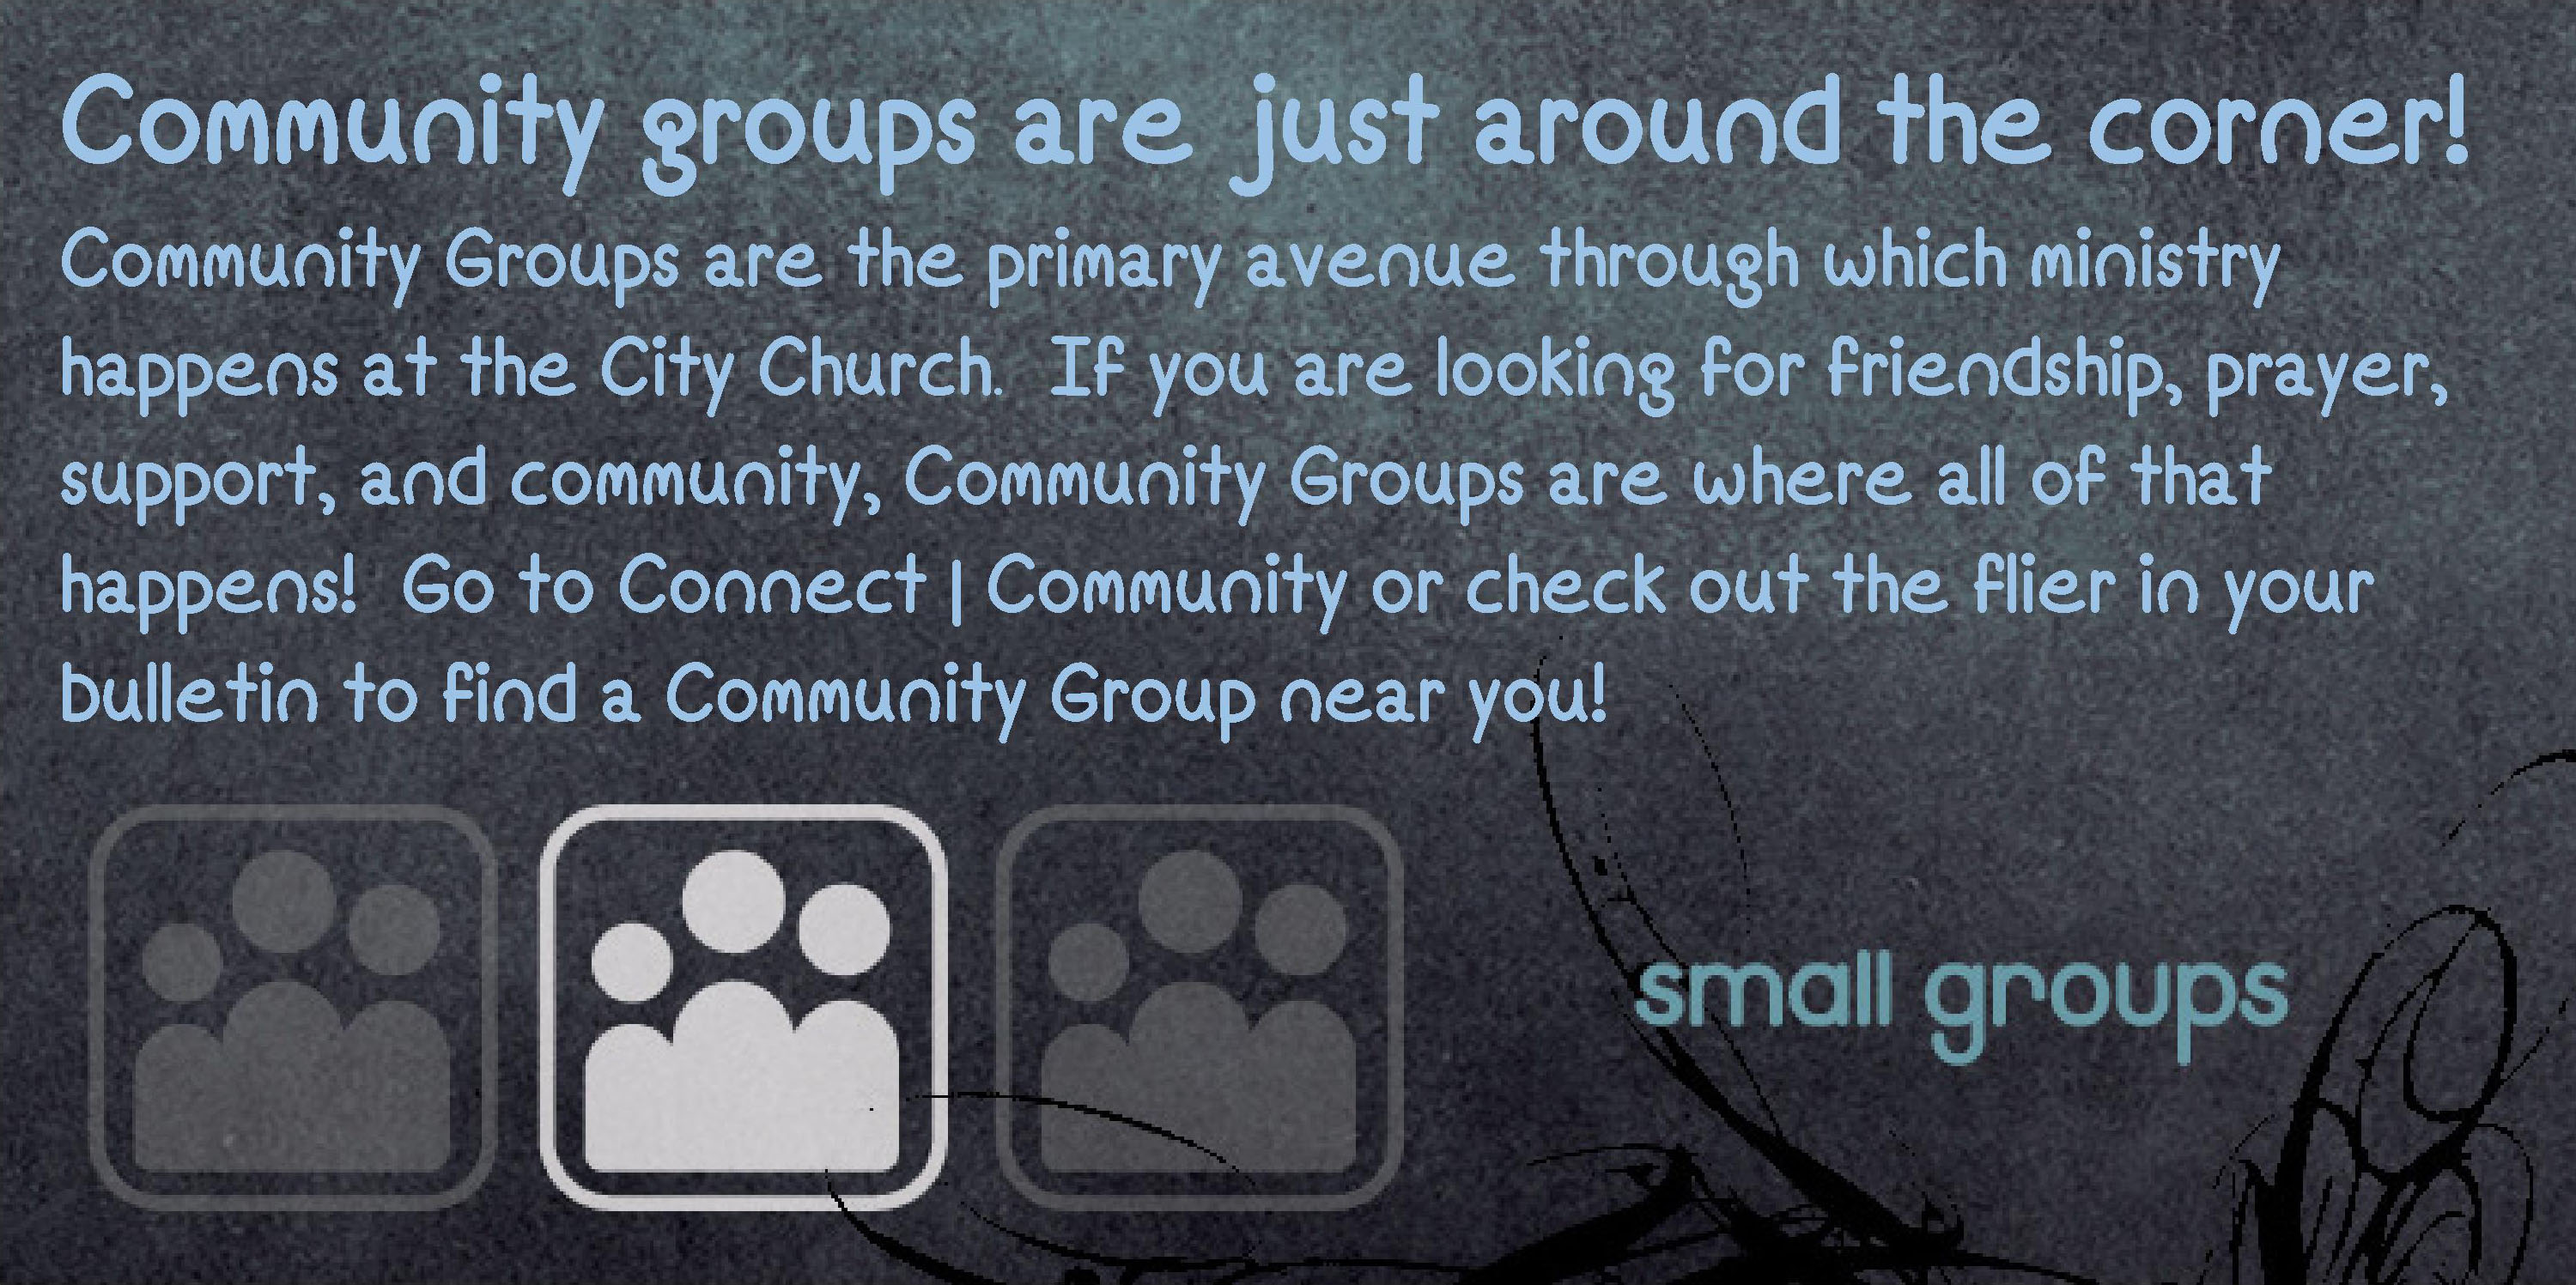 Community Groups001